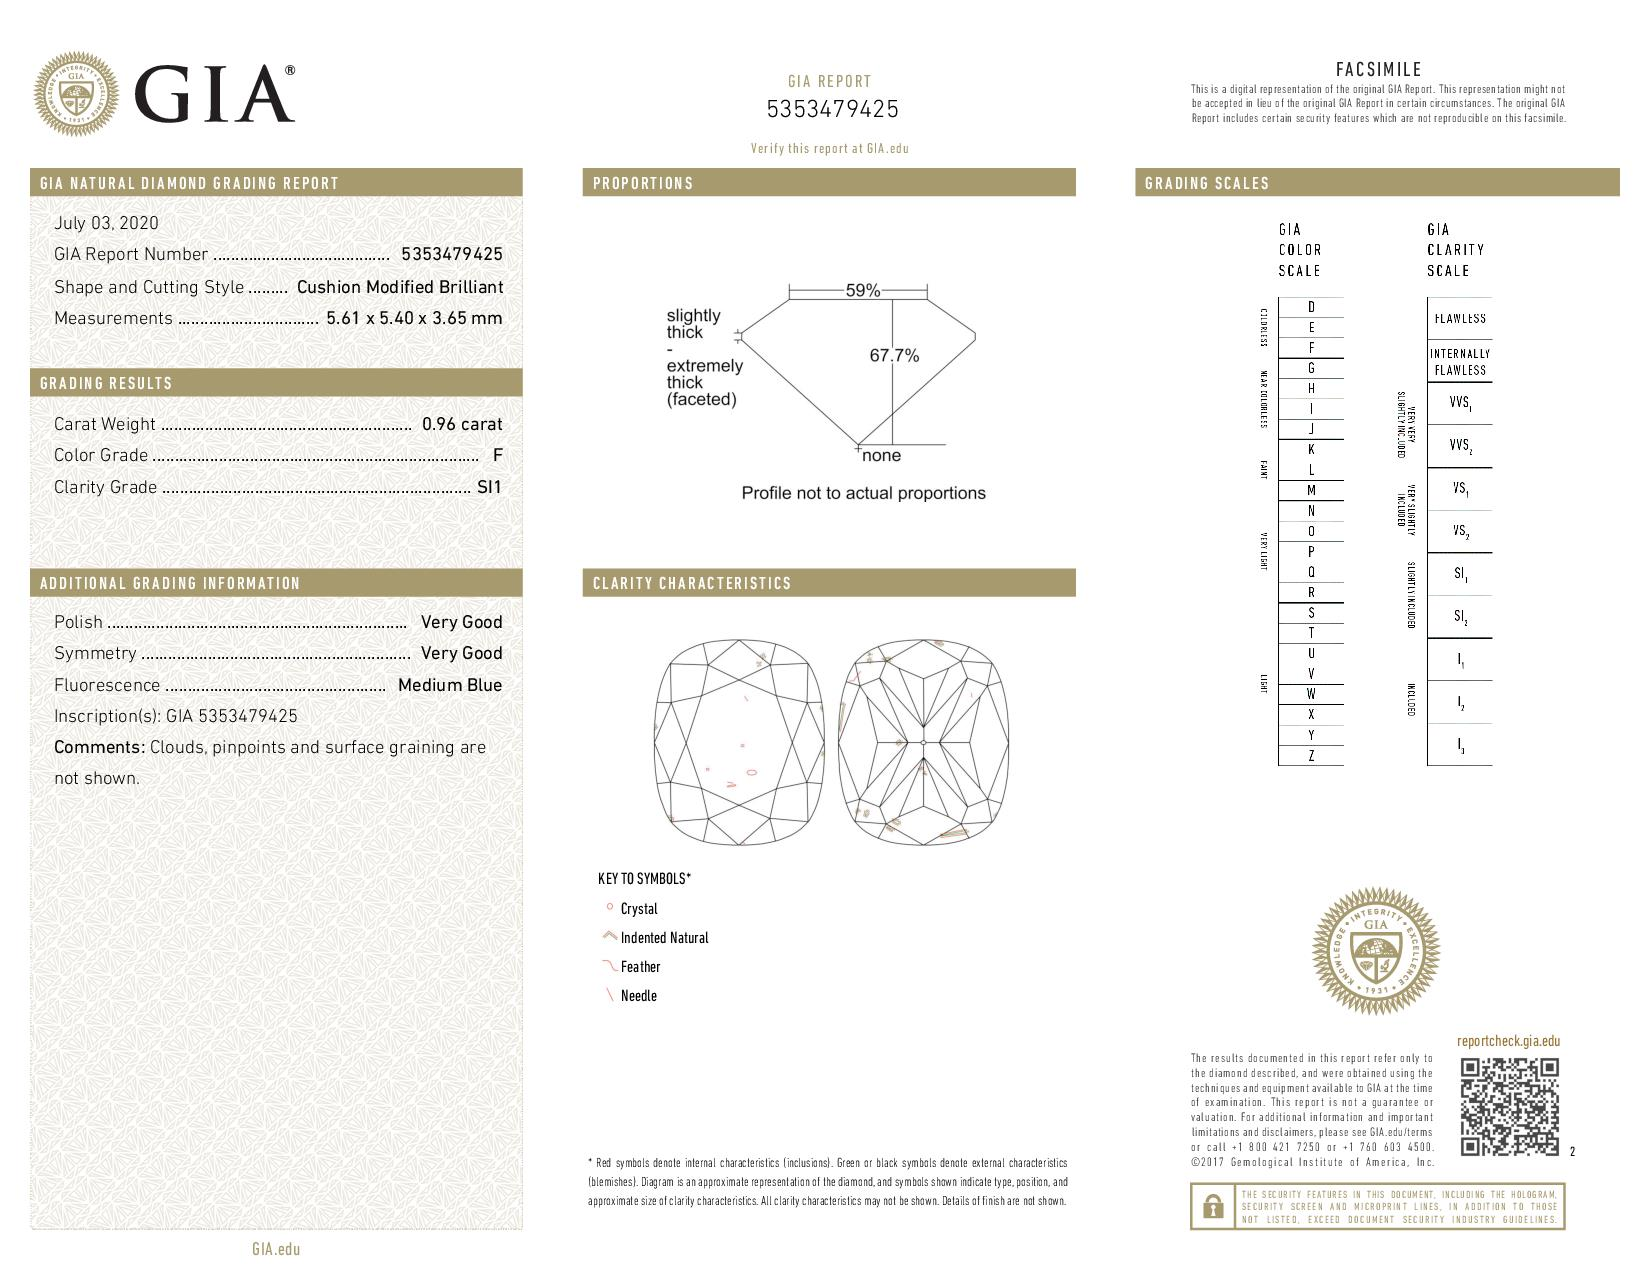 This is a 0.96 carat cushion shape, F color, SI1 clarity natural diamond accompanied by a GIA grading report.